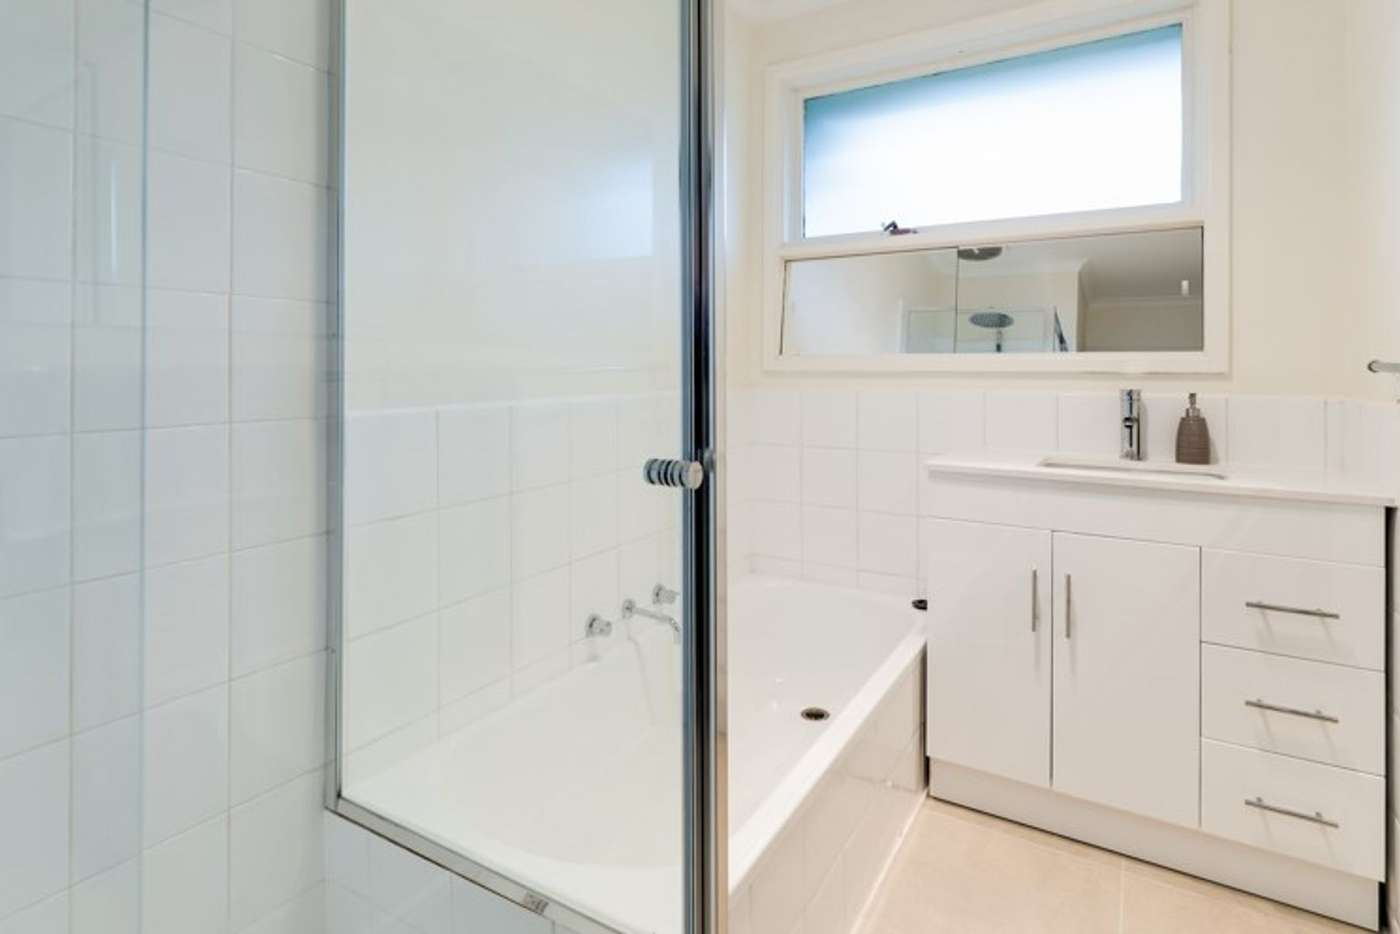 Seventh view of Homely house listing, 23 Serpentine Road, Keysborough VIC 3173